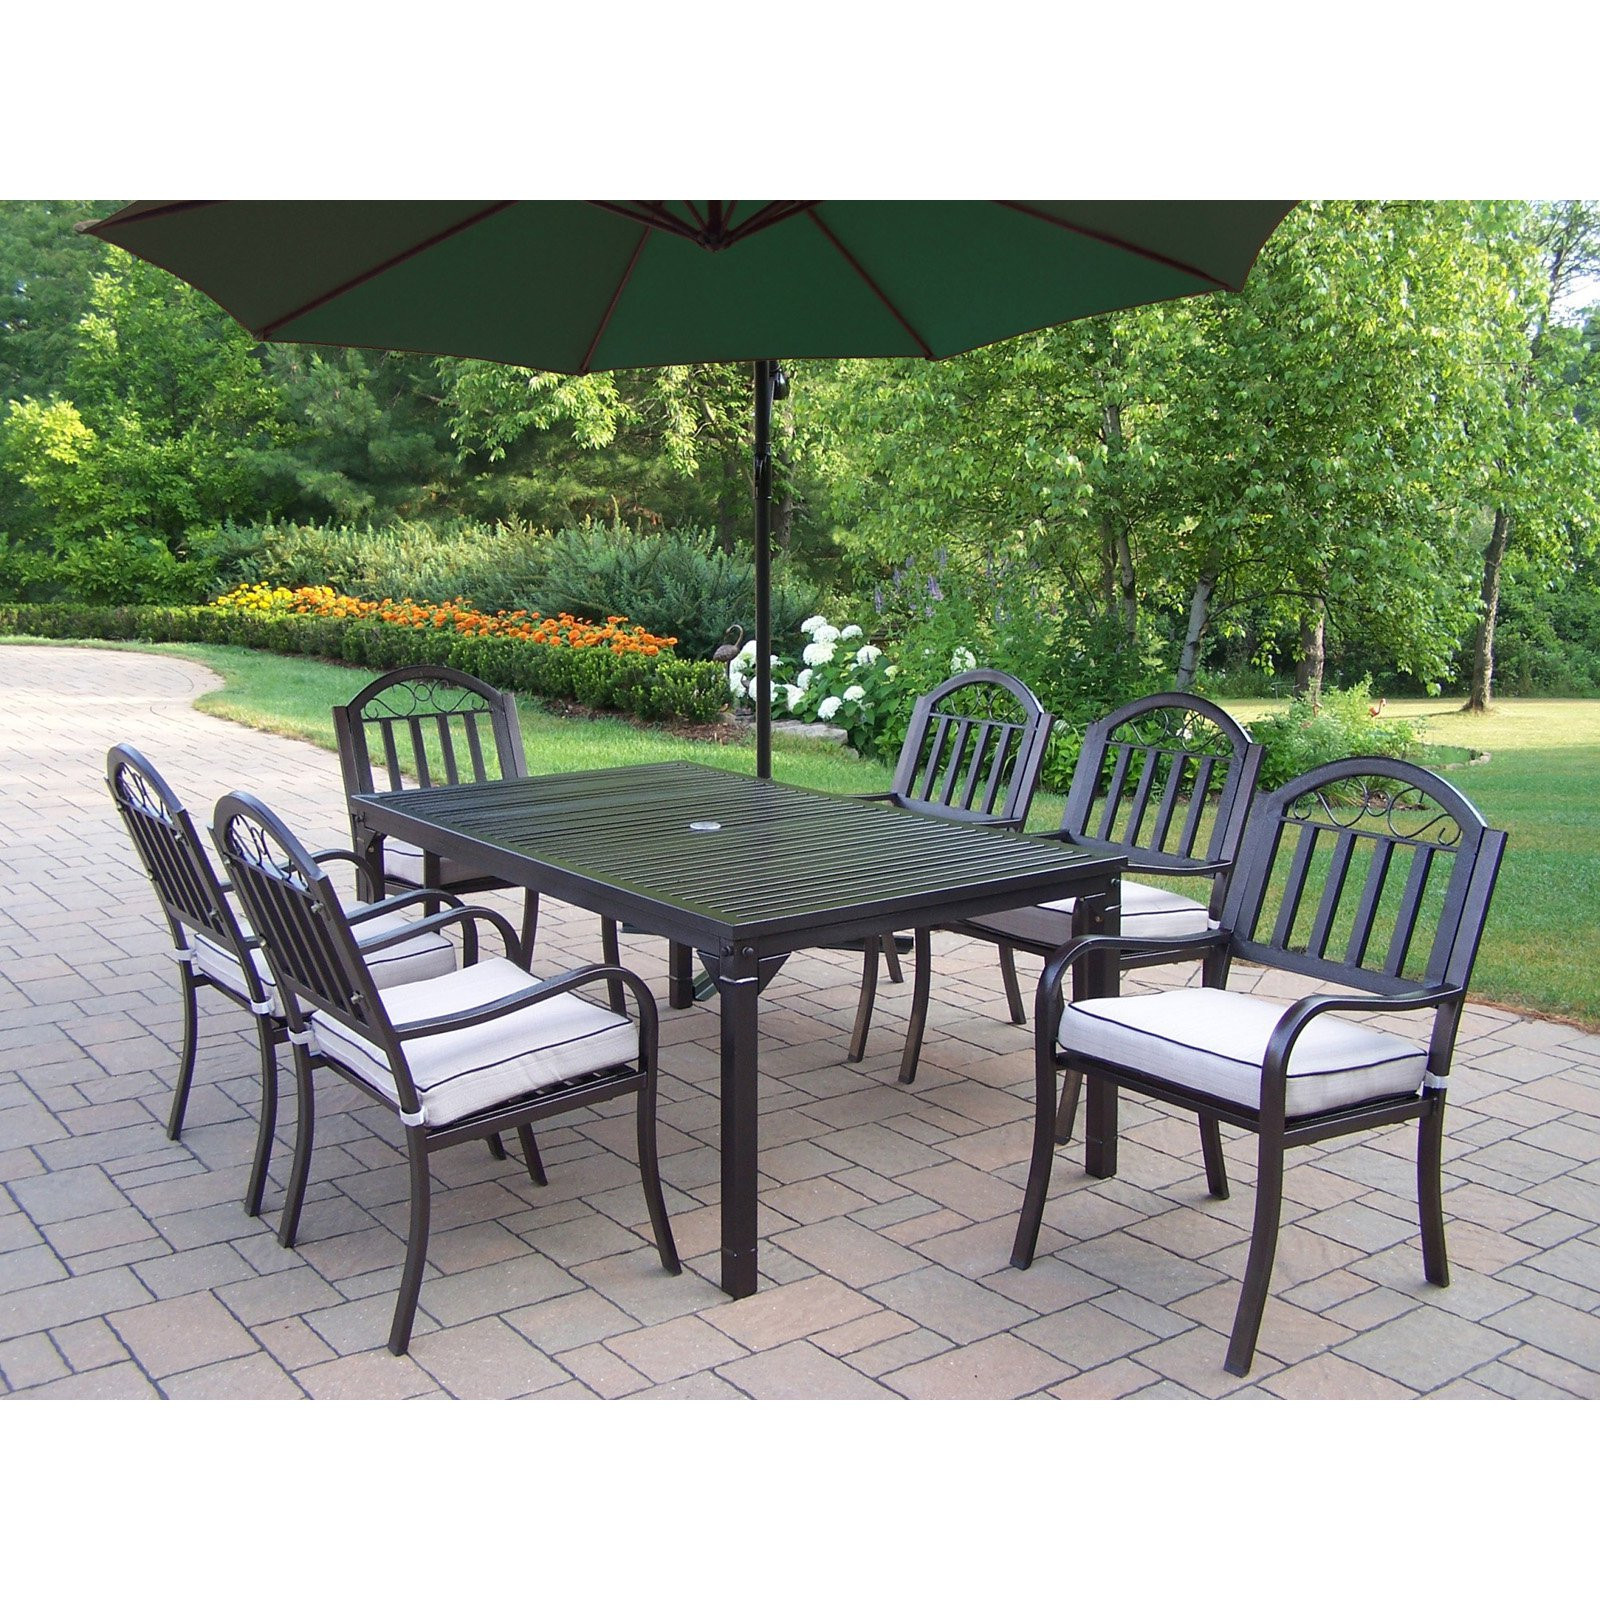 Best ideas about Patio Dining Sets On Sale . Save or Pin Patio Dining Sets With Umbrella Sale Now.